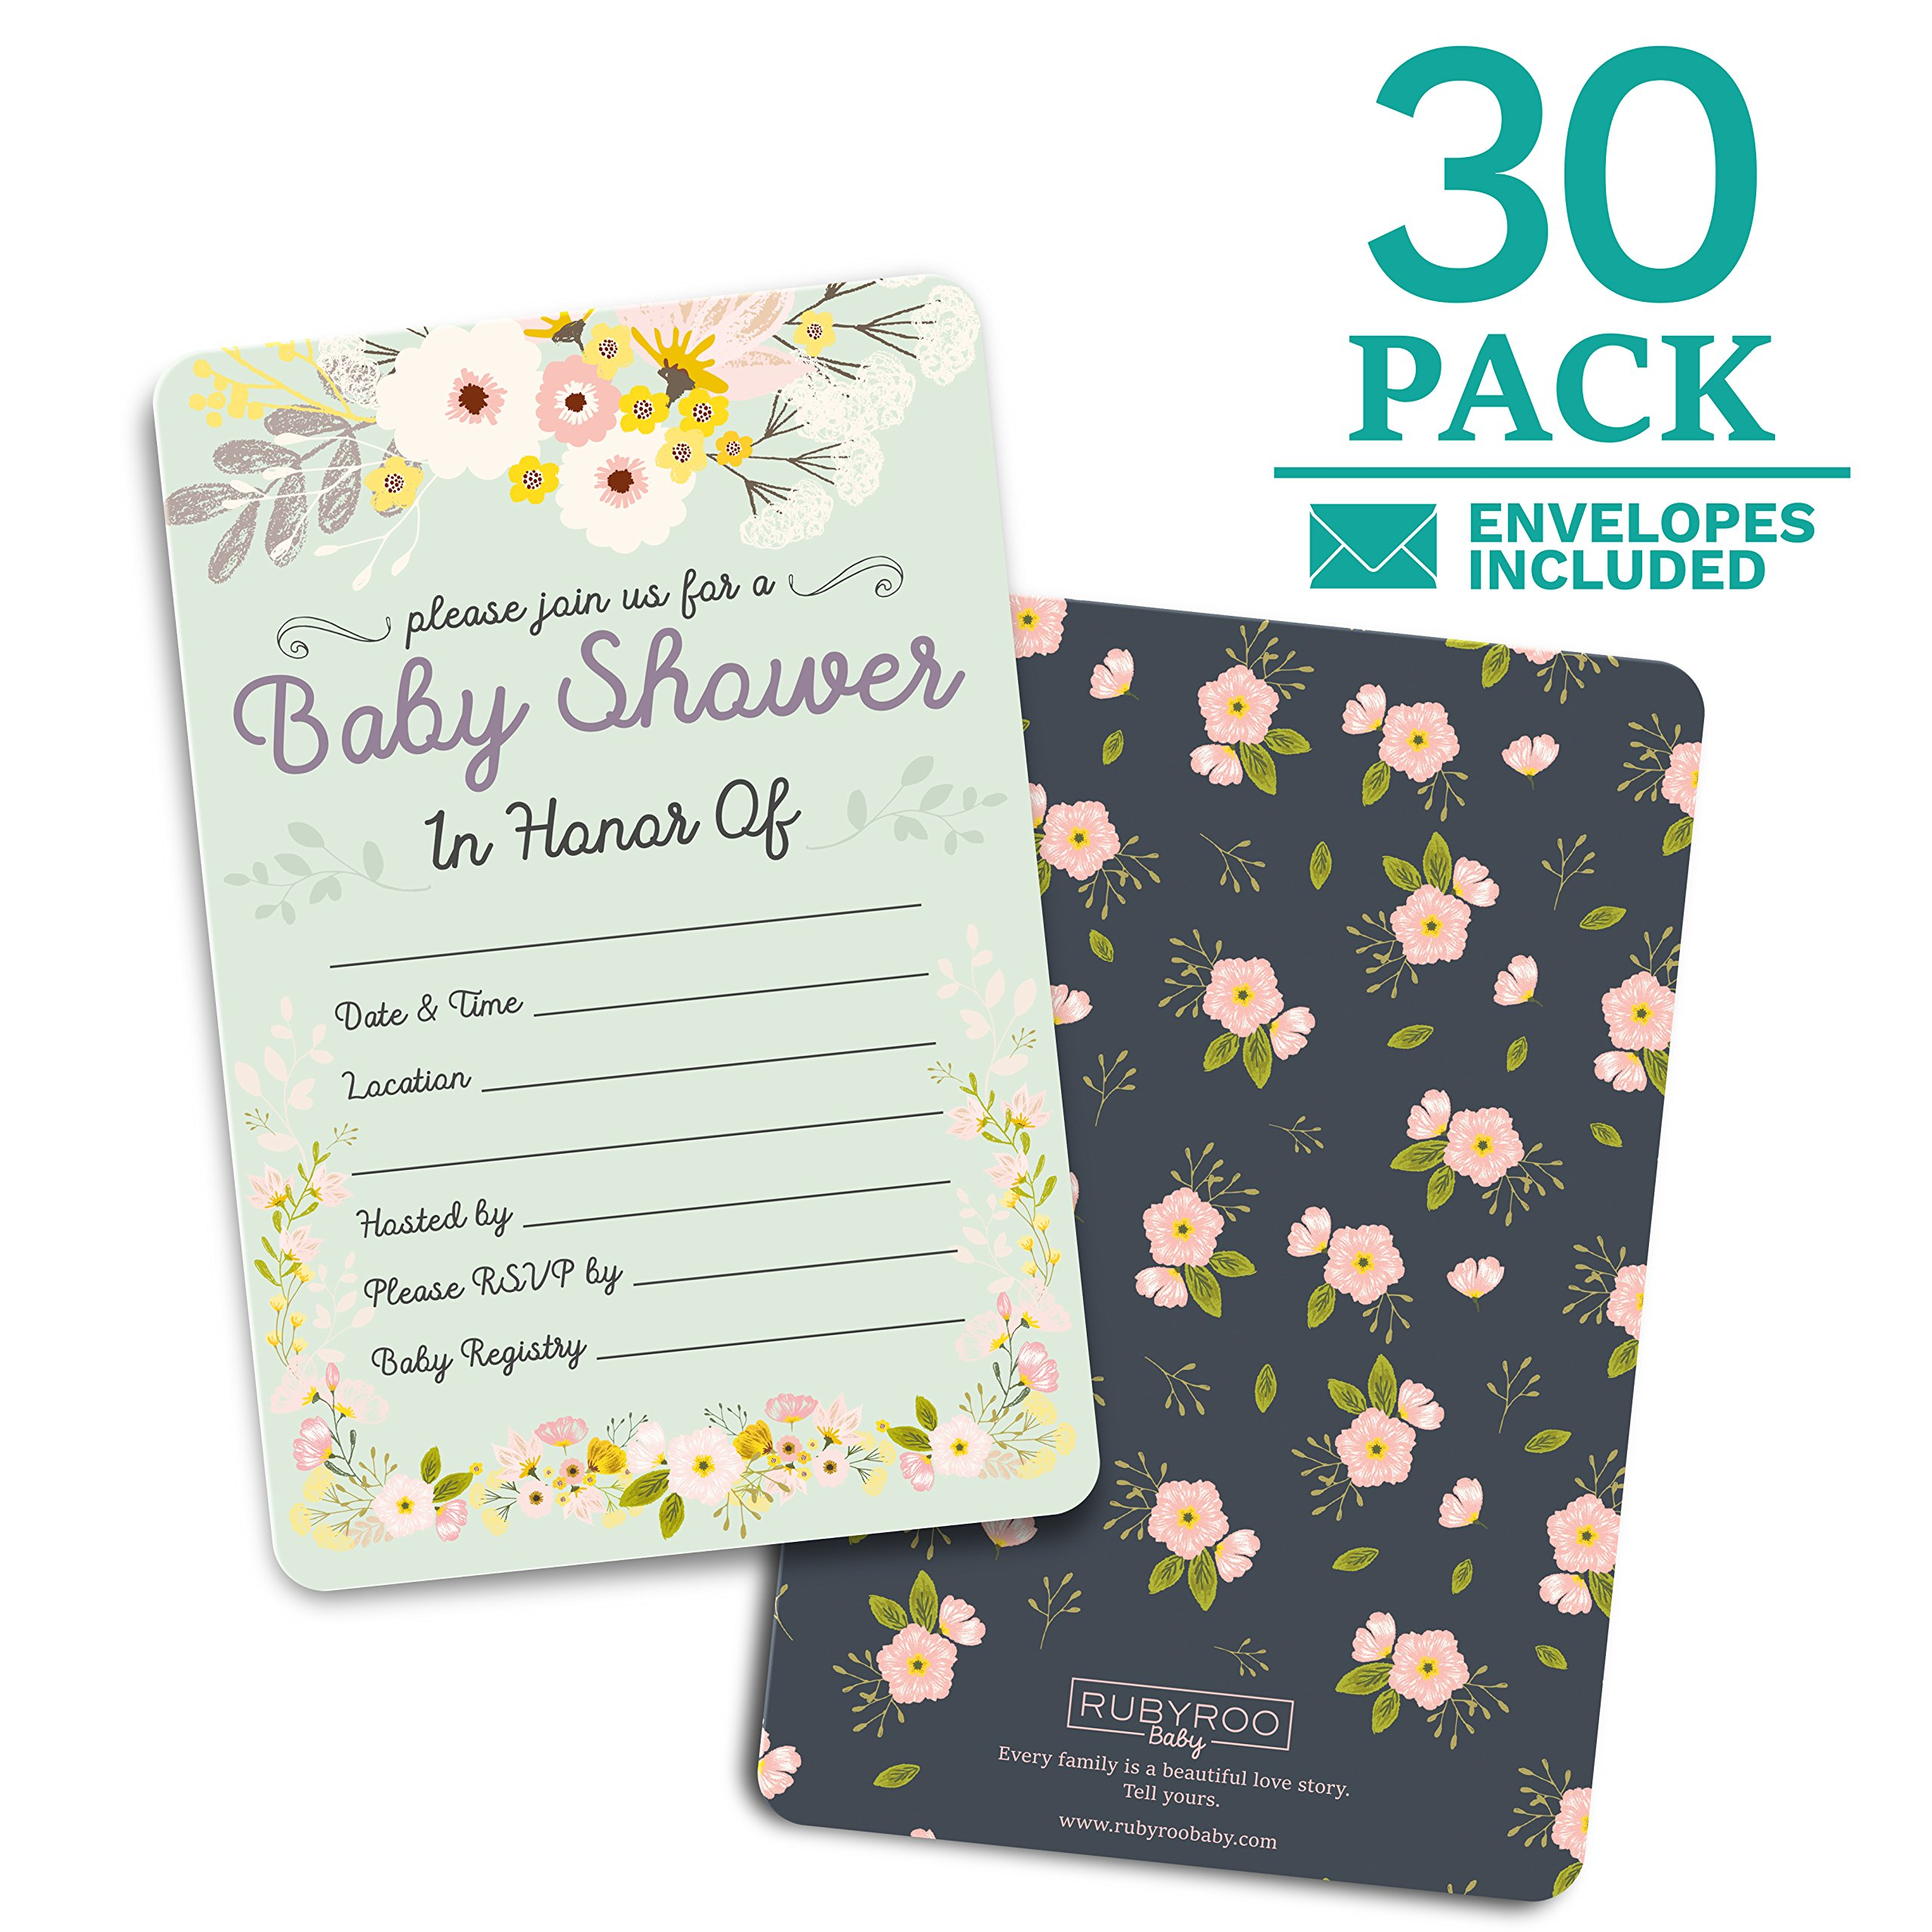 Baby Shower Invitations - 30 cards + envelopes. Gender neutral for boy or girl. Match baby shower games, decorations & favors. Perfect invites for showers, sprinkles or gender reveal party. (Floral)